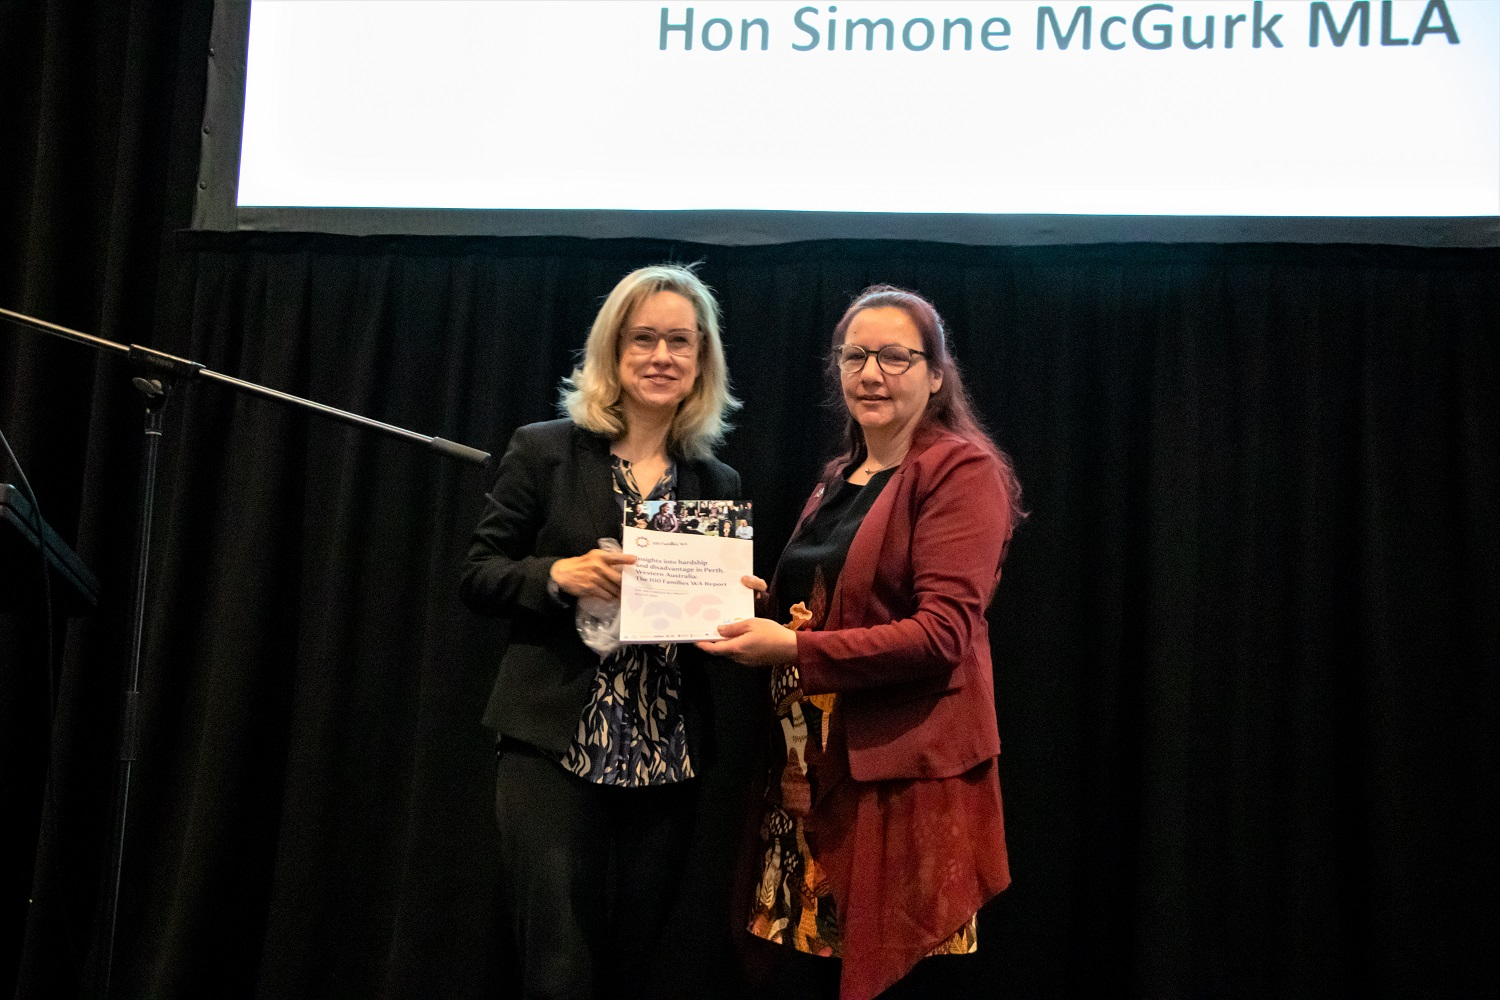 Minister Simone McGurk accepting 100 Families Report from Renna Gayde